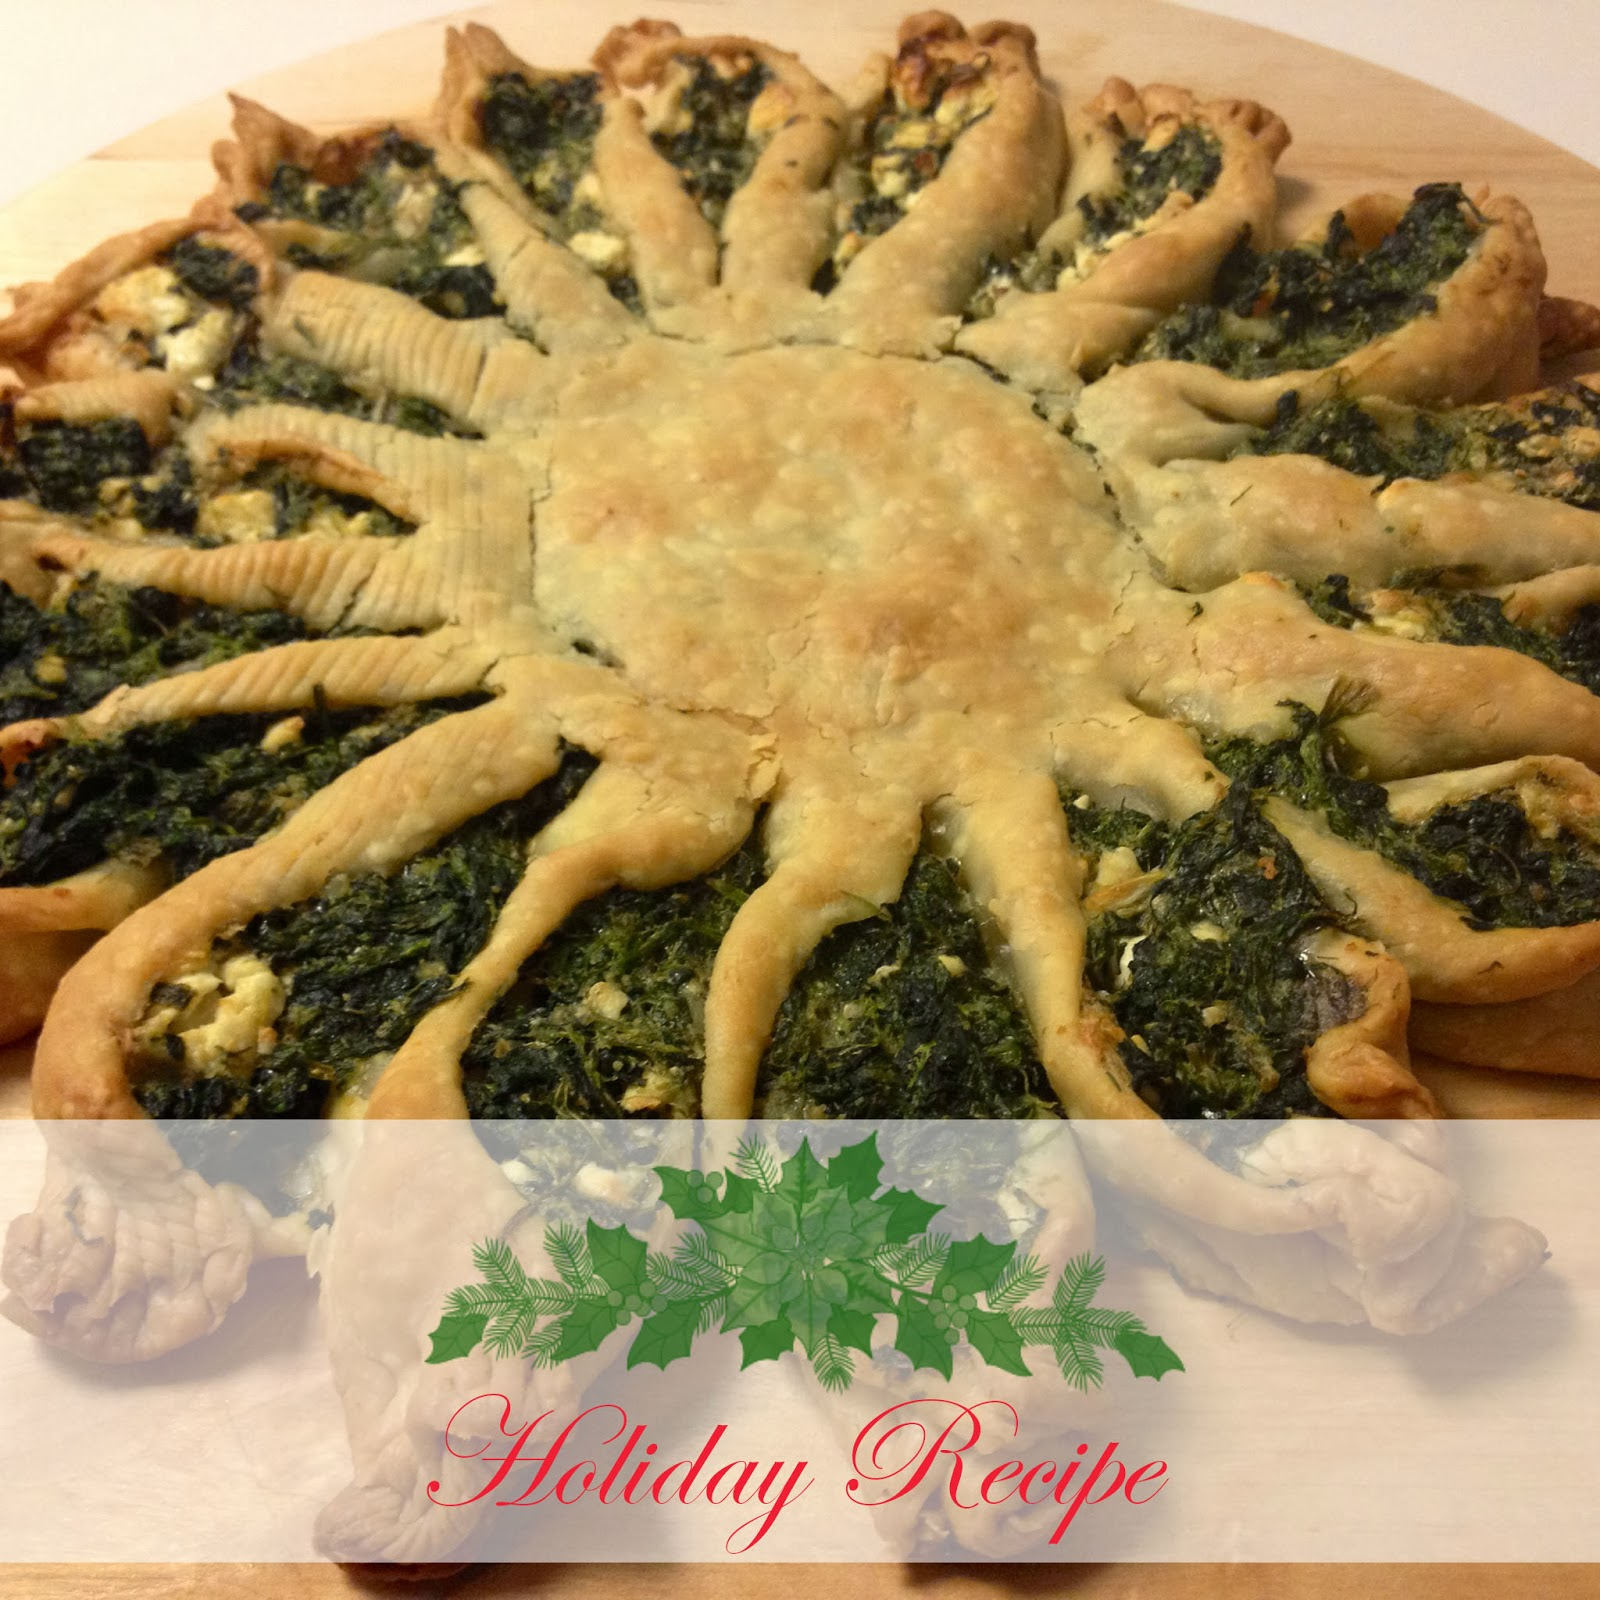 Spinach pie for the Christmas table